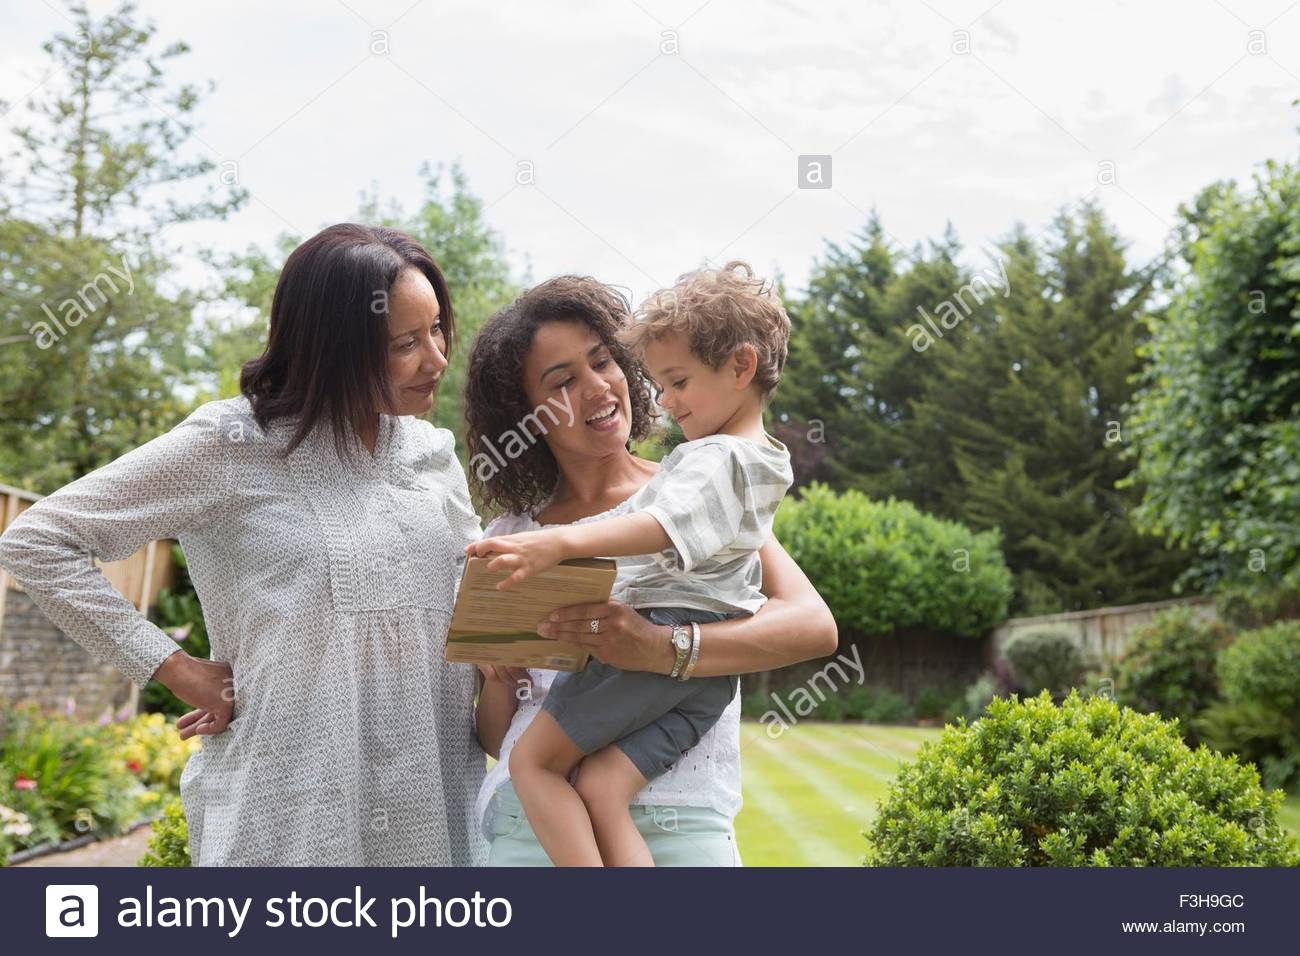 Three generation family, mother showing book to son - Stock Image